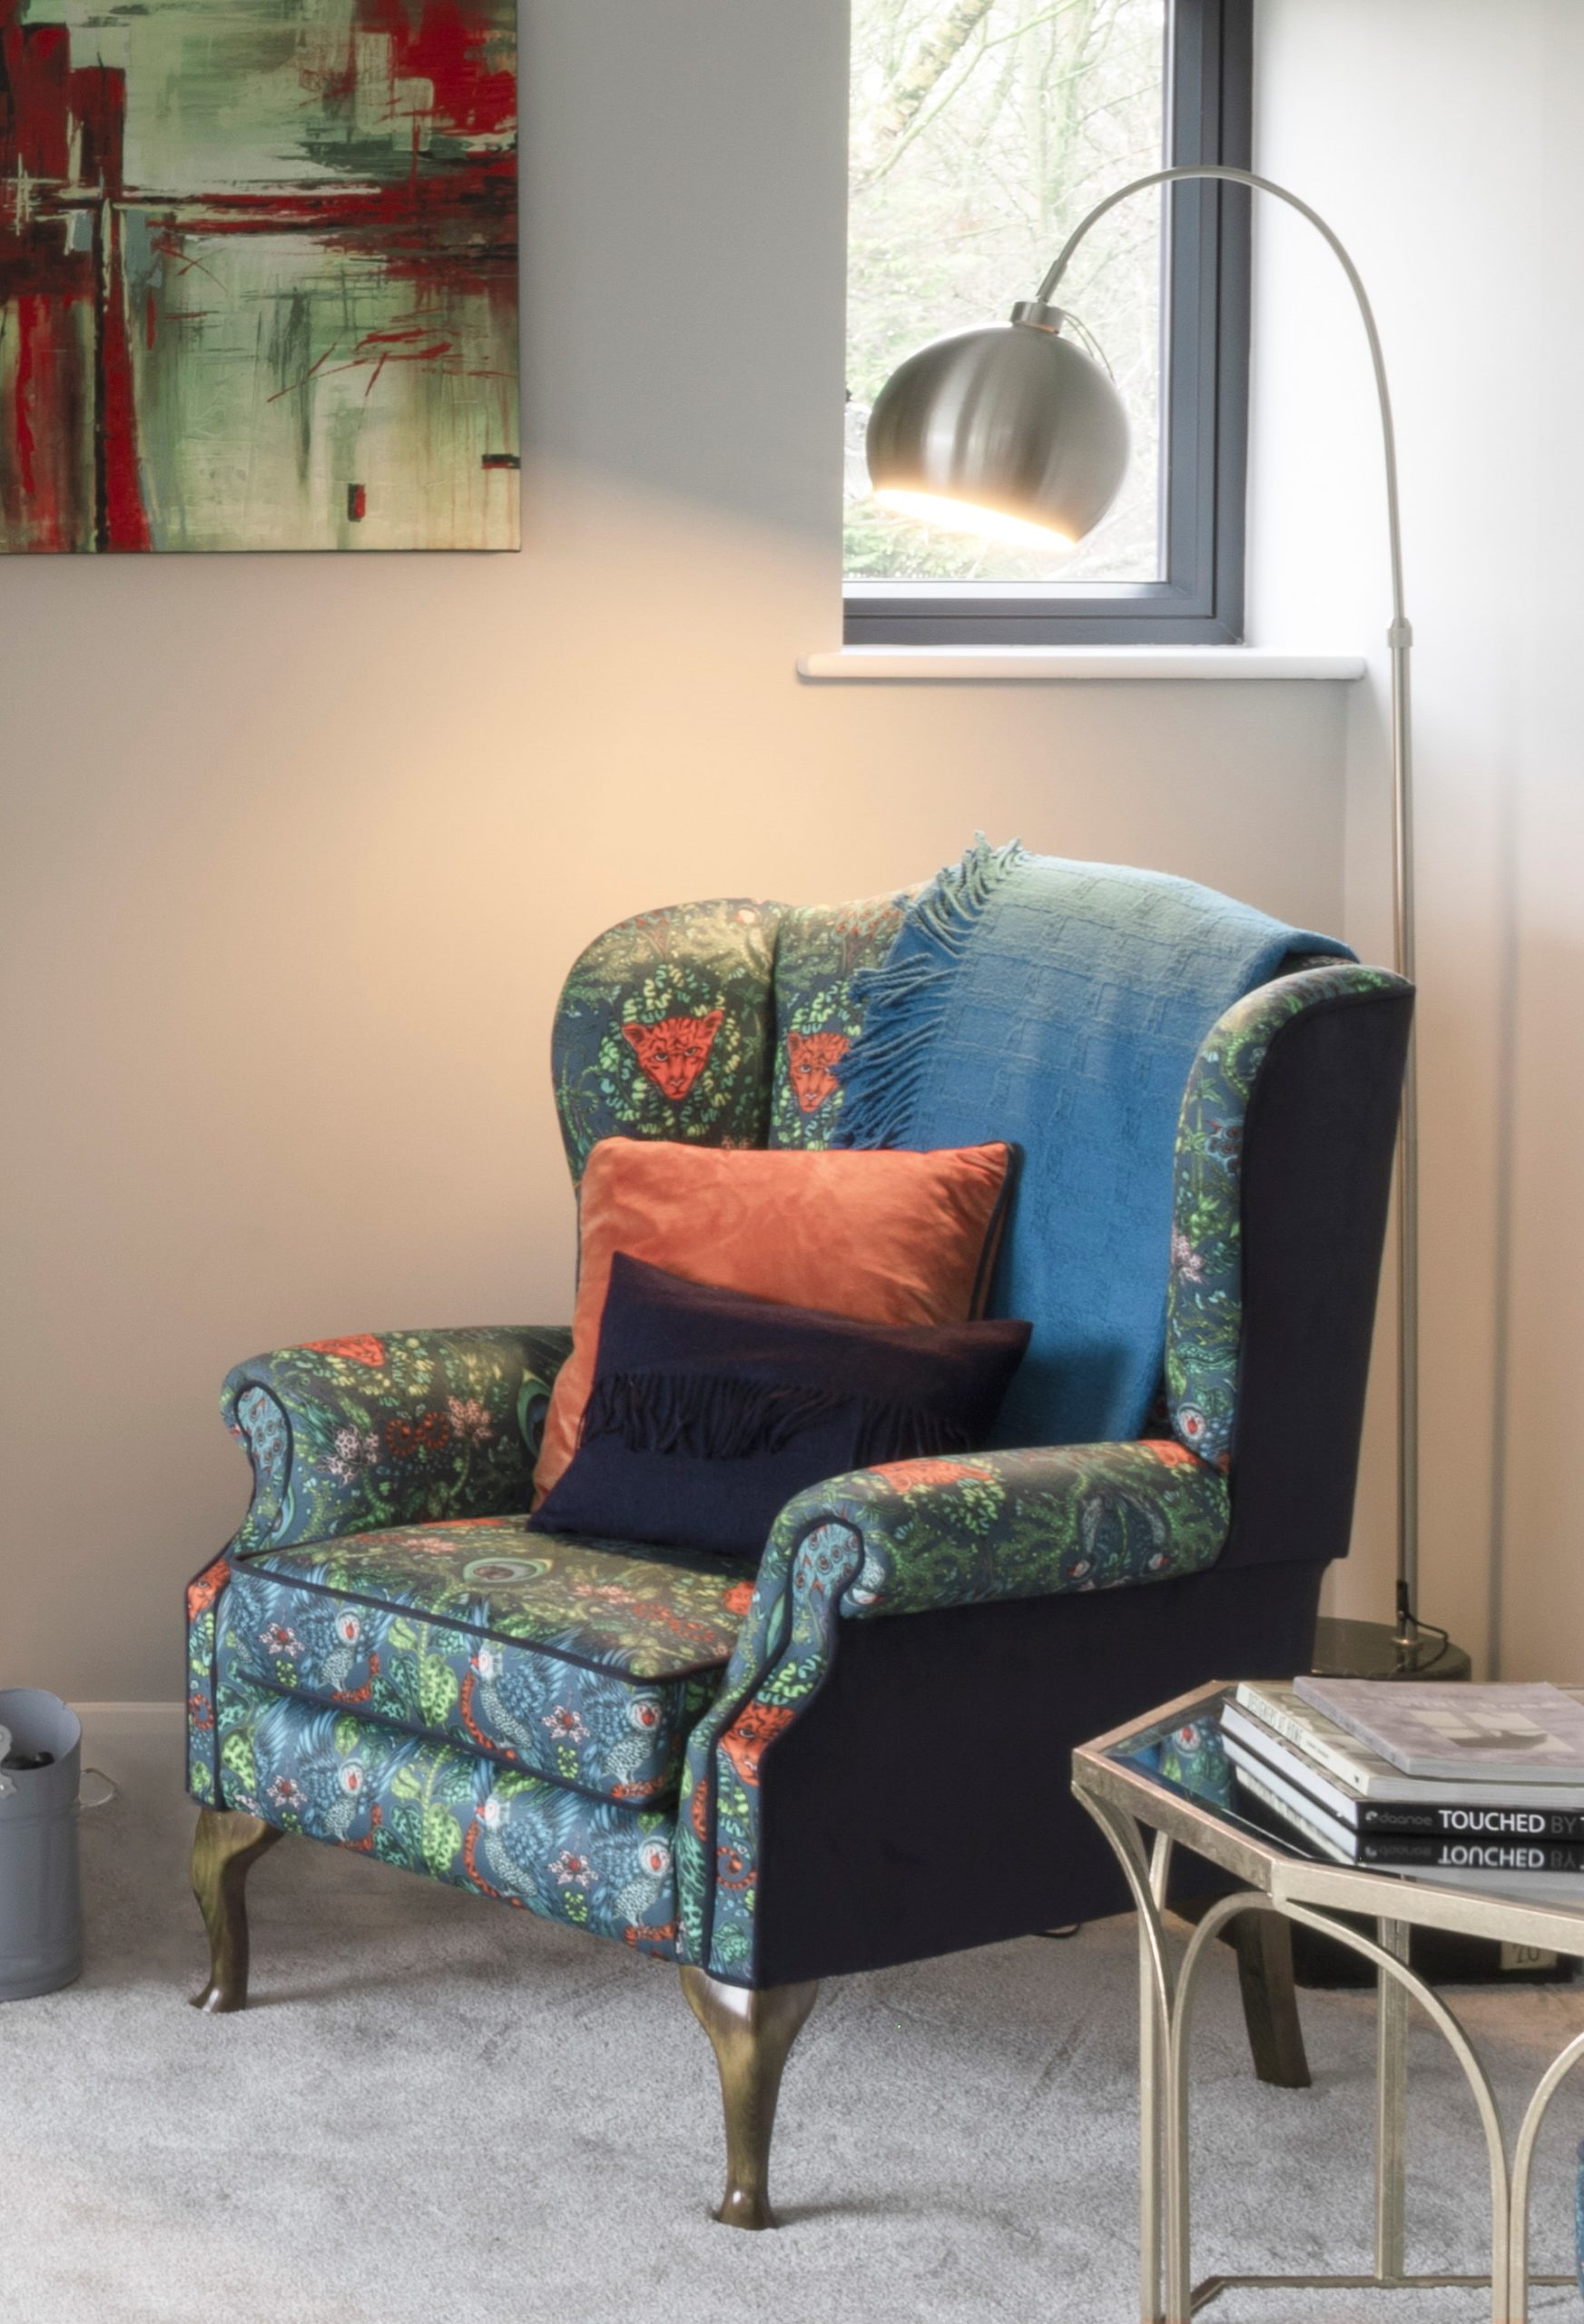 Vibrant pattern and pops of colour make this a cosy corner